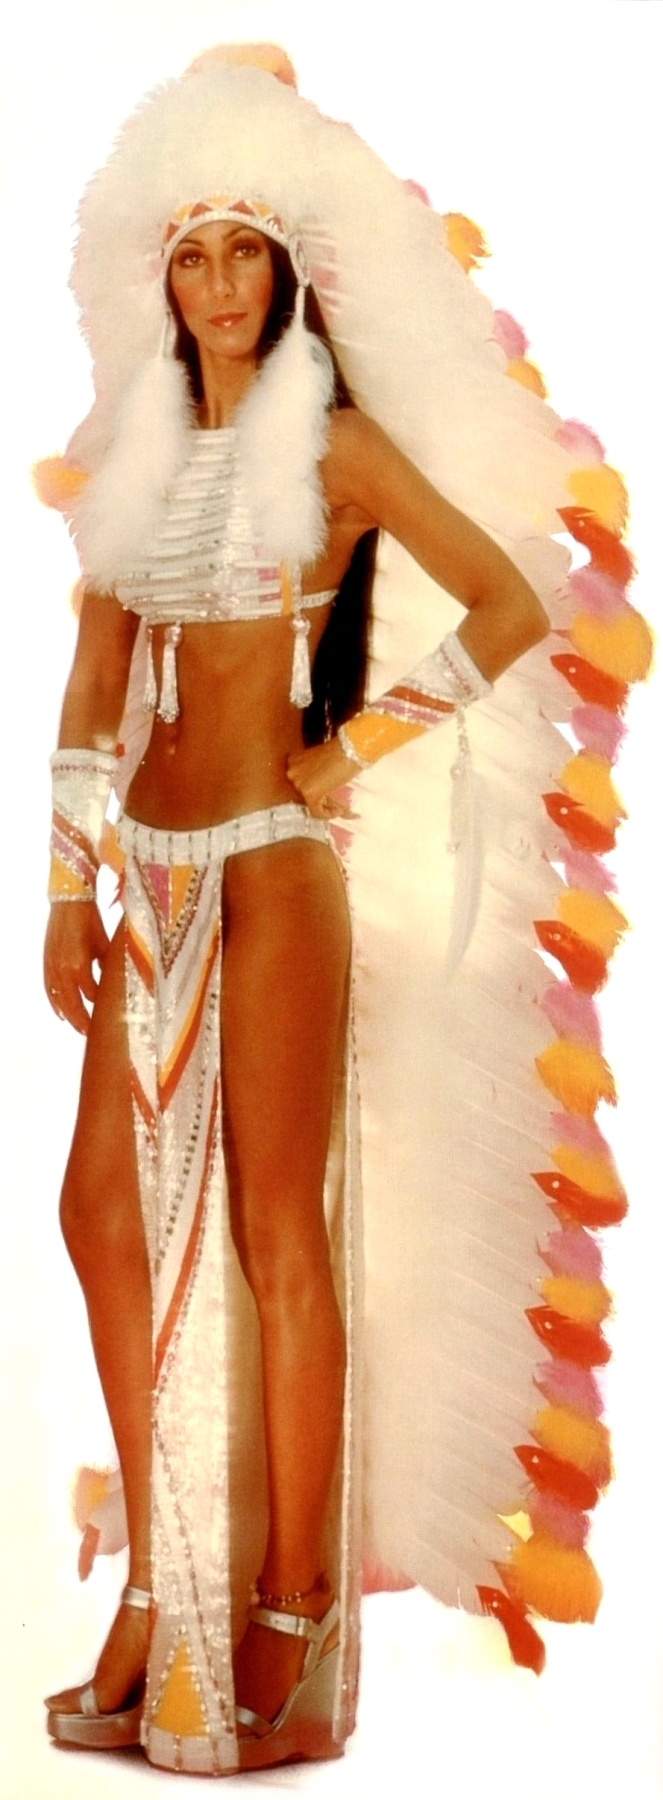 """Cher """"HalfBreed"""" outfit by Bob Mackie circa 1972"""